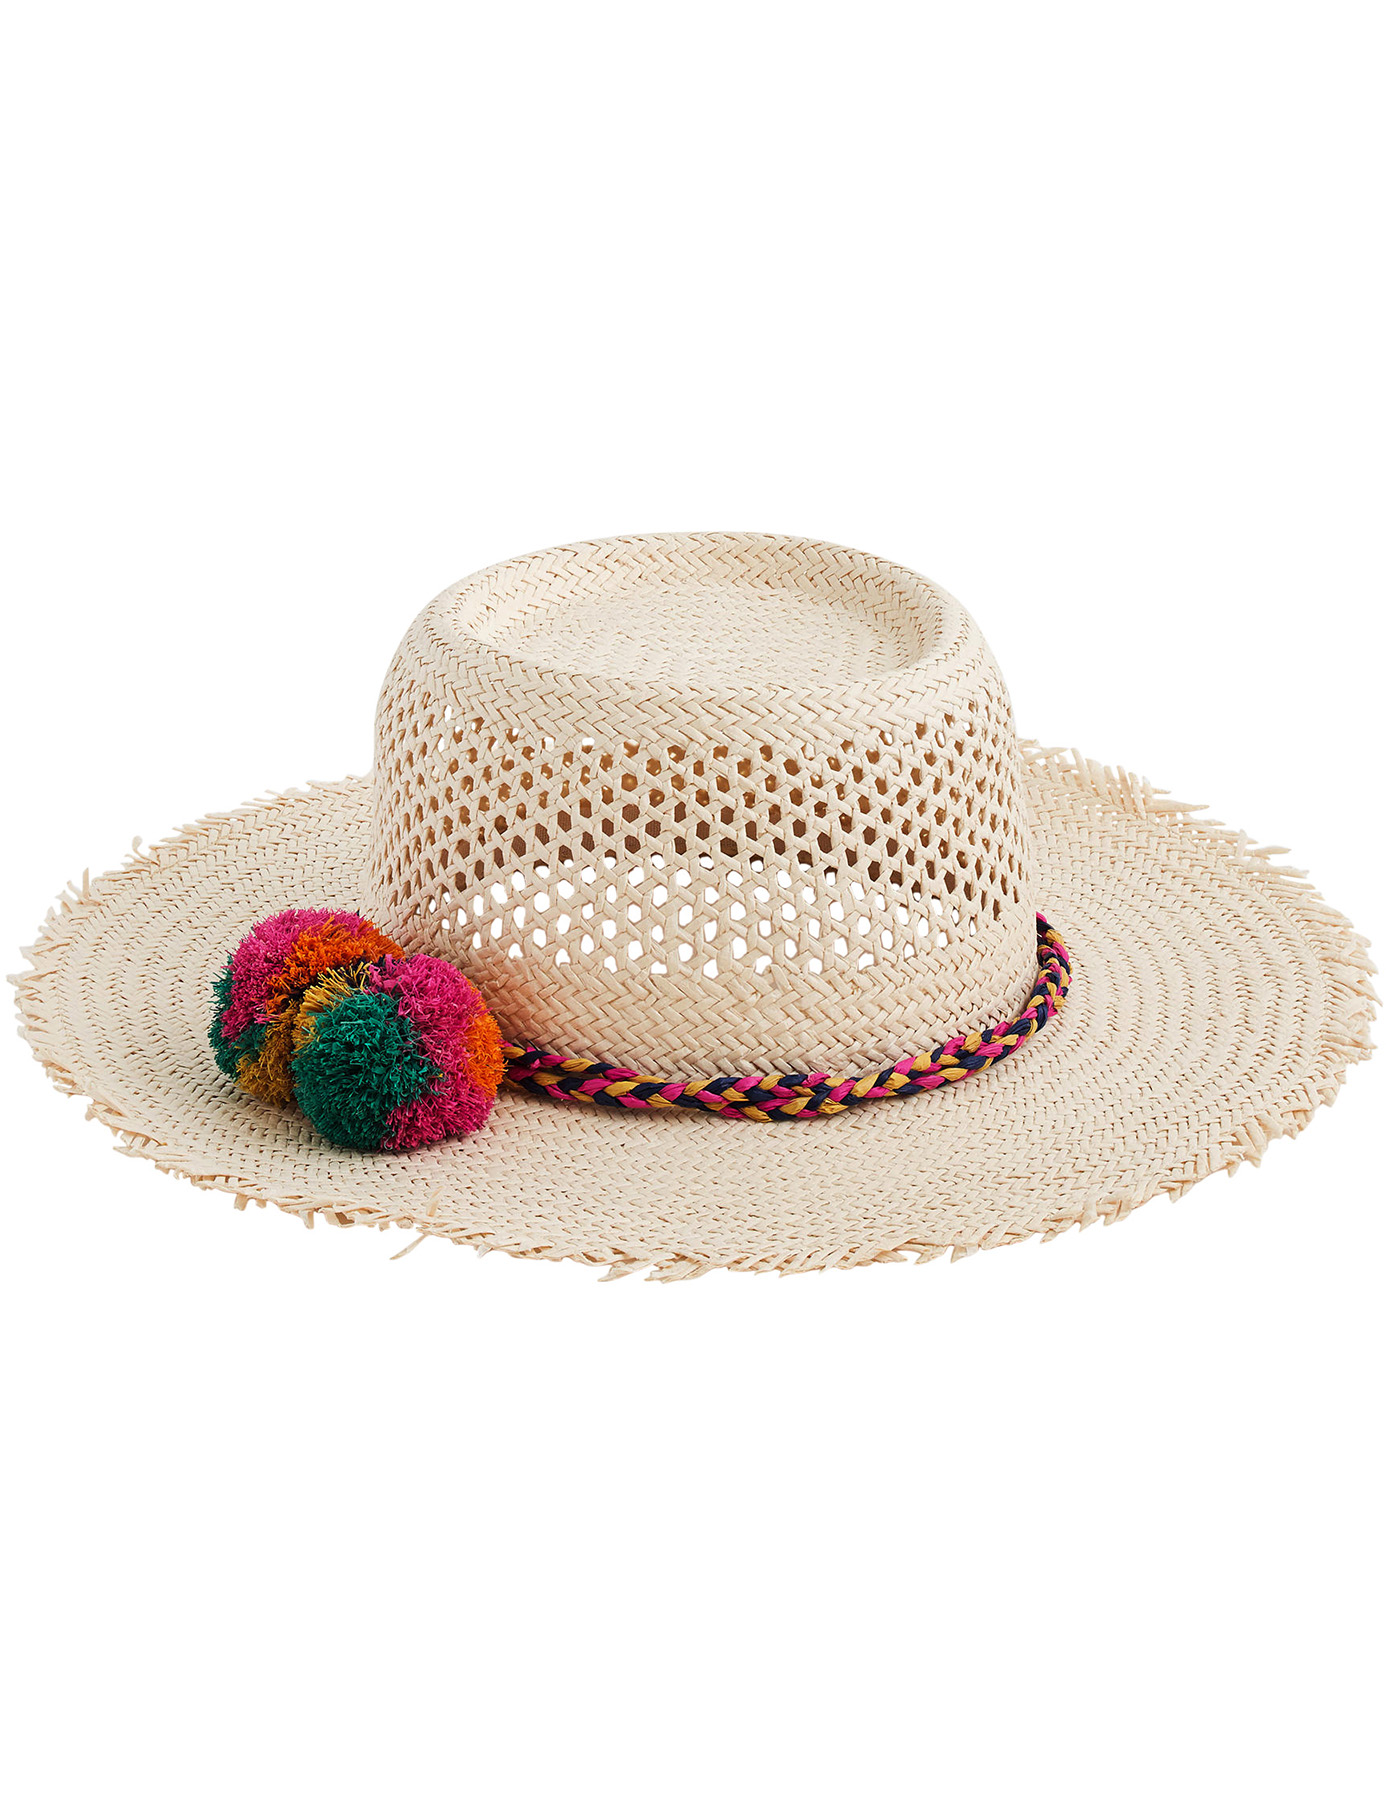 J. Crew Straw Hat with Rainbow Pom Poms